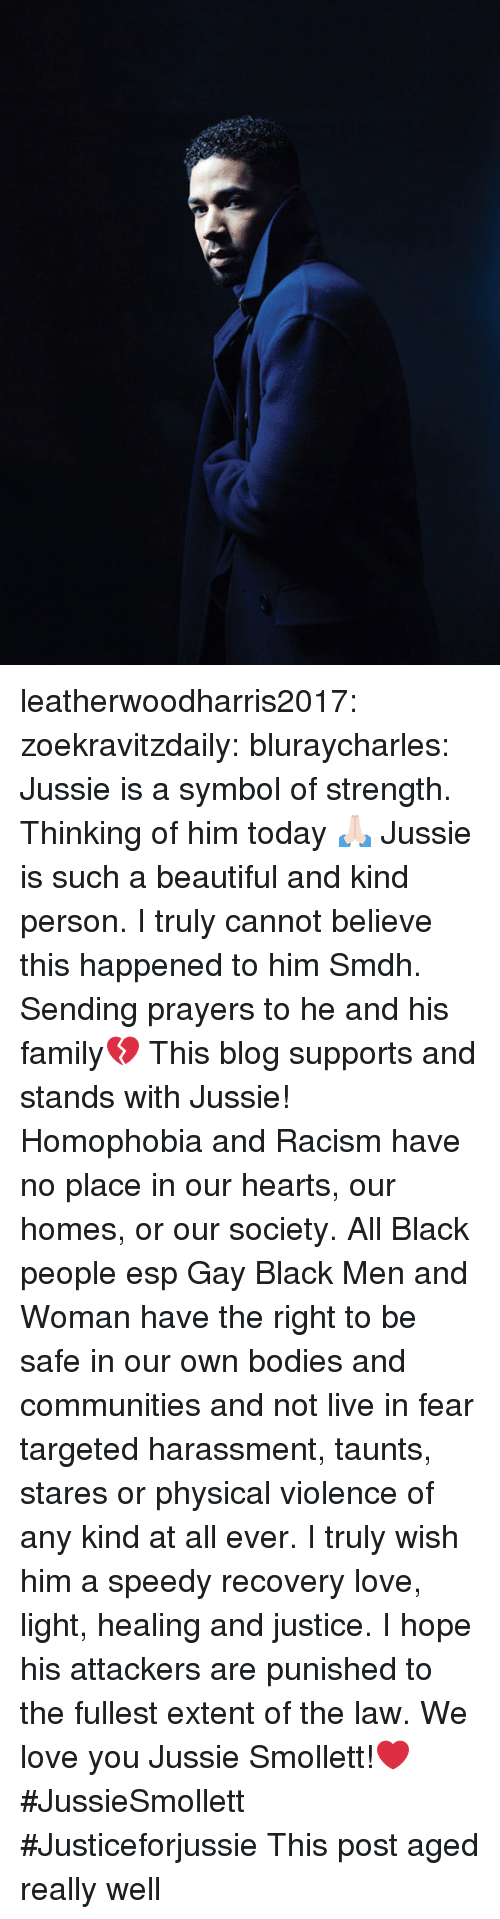 Beautiful, Bodies , and Family: leatherwoodharris2017:  zoekravitzdaily:  bluraycharles:  Jussie is a symbol of strength. Thinking of him today 🙏🏻  Jussie is such a beautiful and kind person. I truly cannot believe this happened to him Smdh. Sending prayers to he and his family💔  This blog supports and stands with Jussie! Homophobia and Racism have no place in our hearts, our homes, or our society.  All Black people esp Gay Black Men and Woman have the right to be safe in our own bodies and communities and not live in fear targeted harassment, taunts, stares or physical violence of any kind at all ever. I truly wish him a speedy recovery love, light, healing and justice. I hope his attackers are punished to the fullest extent of the law. We love you Jussie Smollett!❤ #JussieSmollett  #Justiceforjussie   This post aged really well